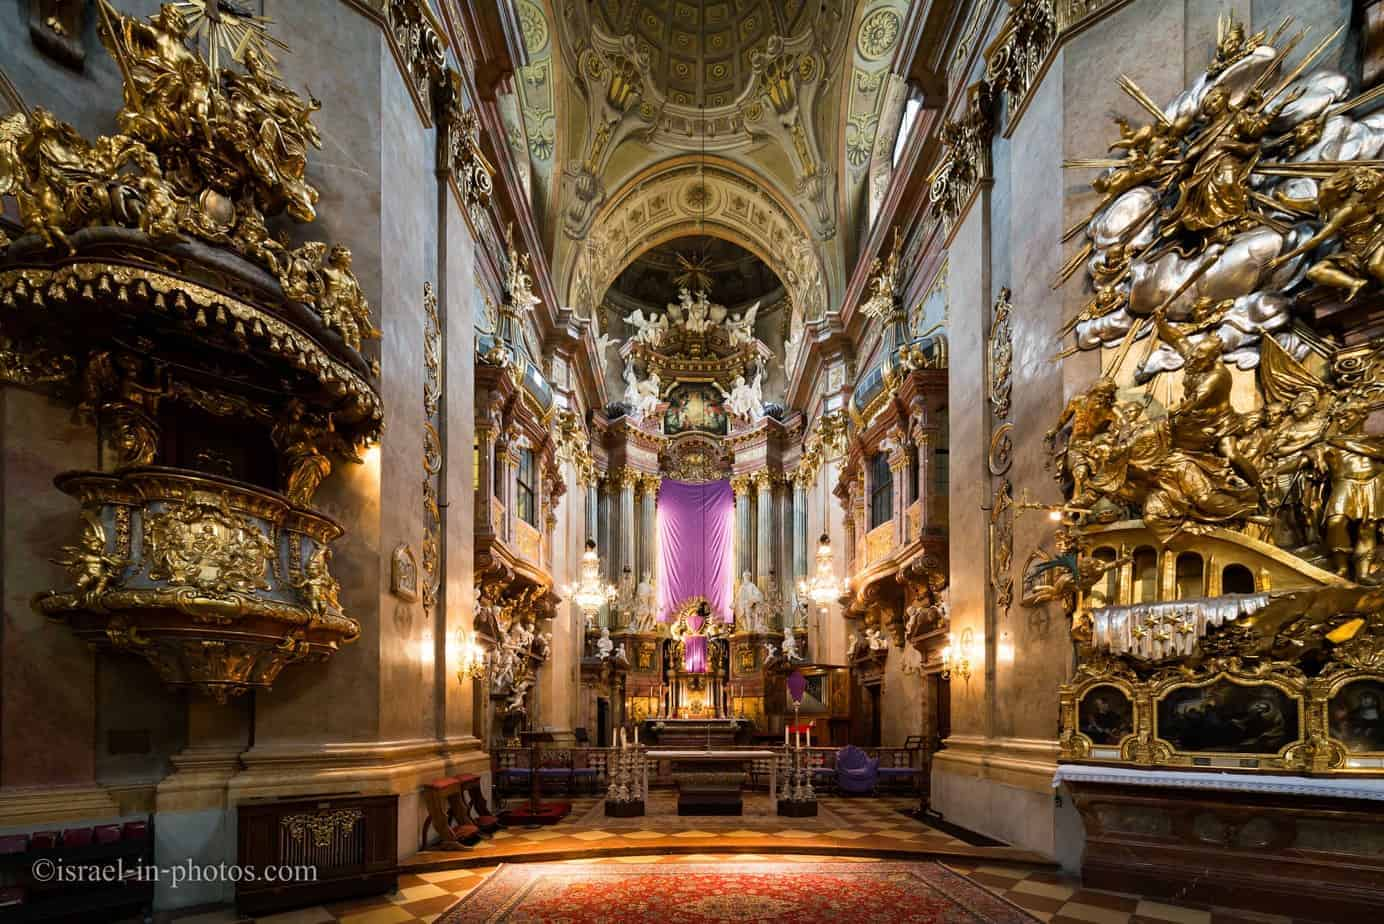 St. Peter's Church. St. Peter's Church AKA Peterskirche in Vienna, Capital de Austria